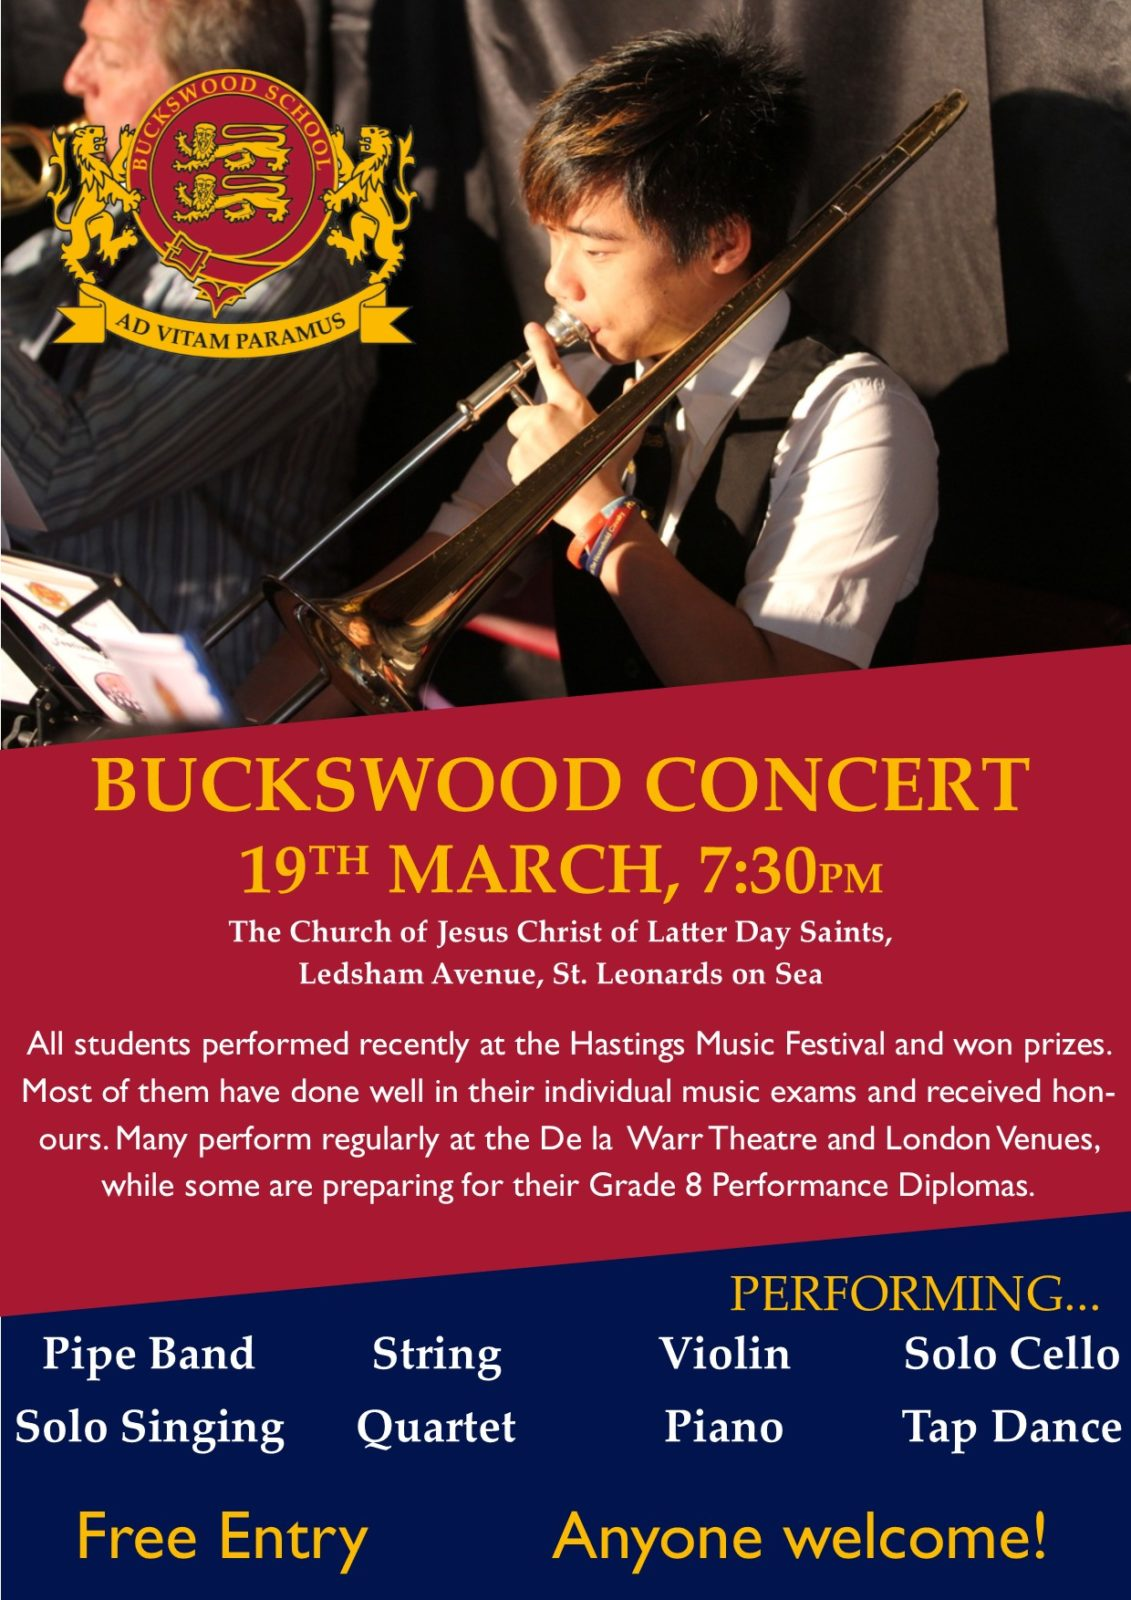 Buckswood Music Department Blow their Trumpets for Upcoming Concert